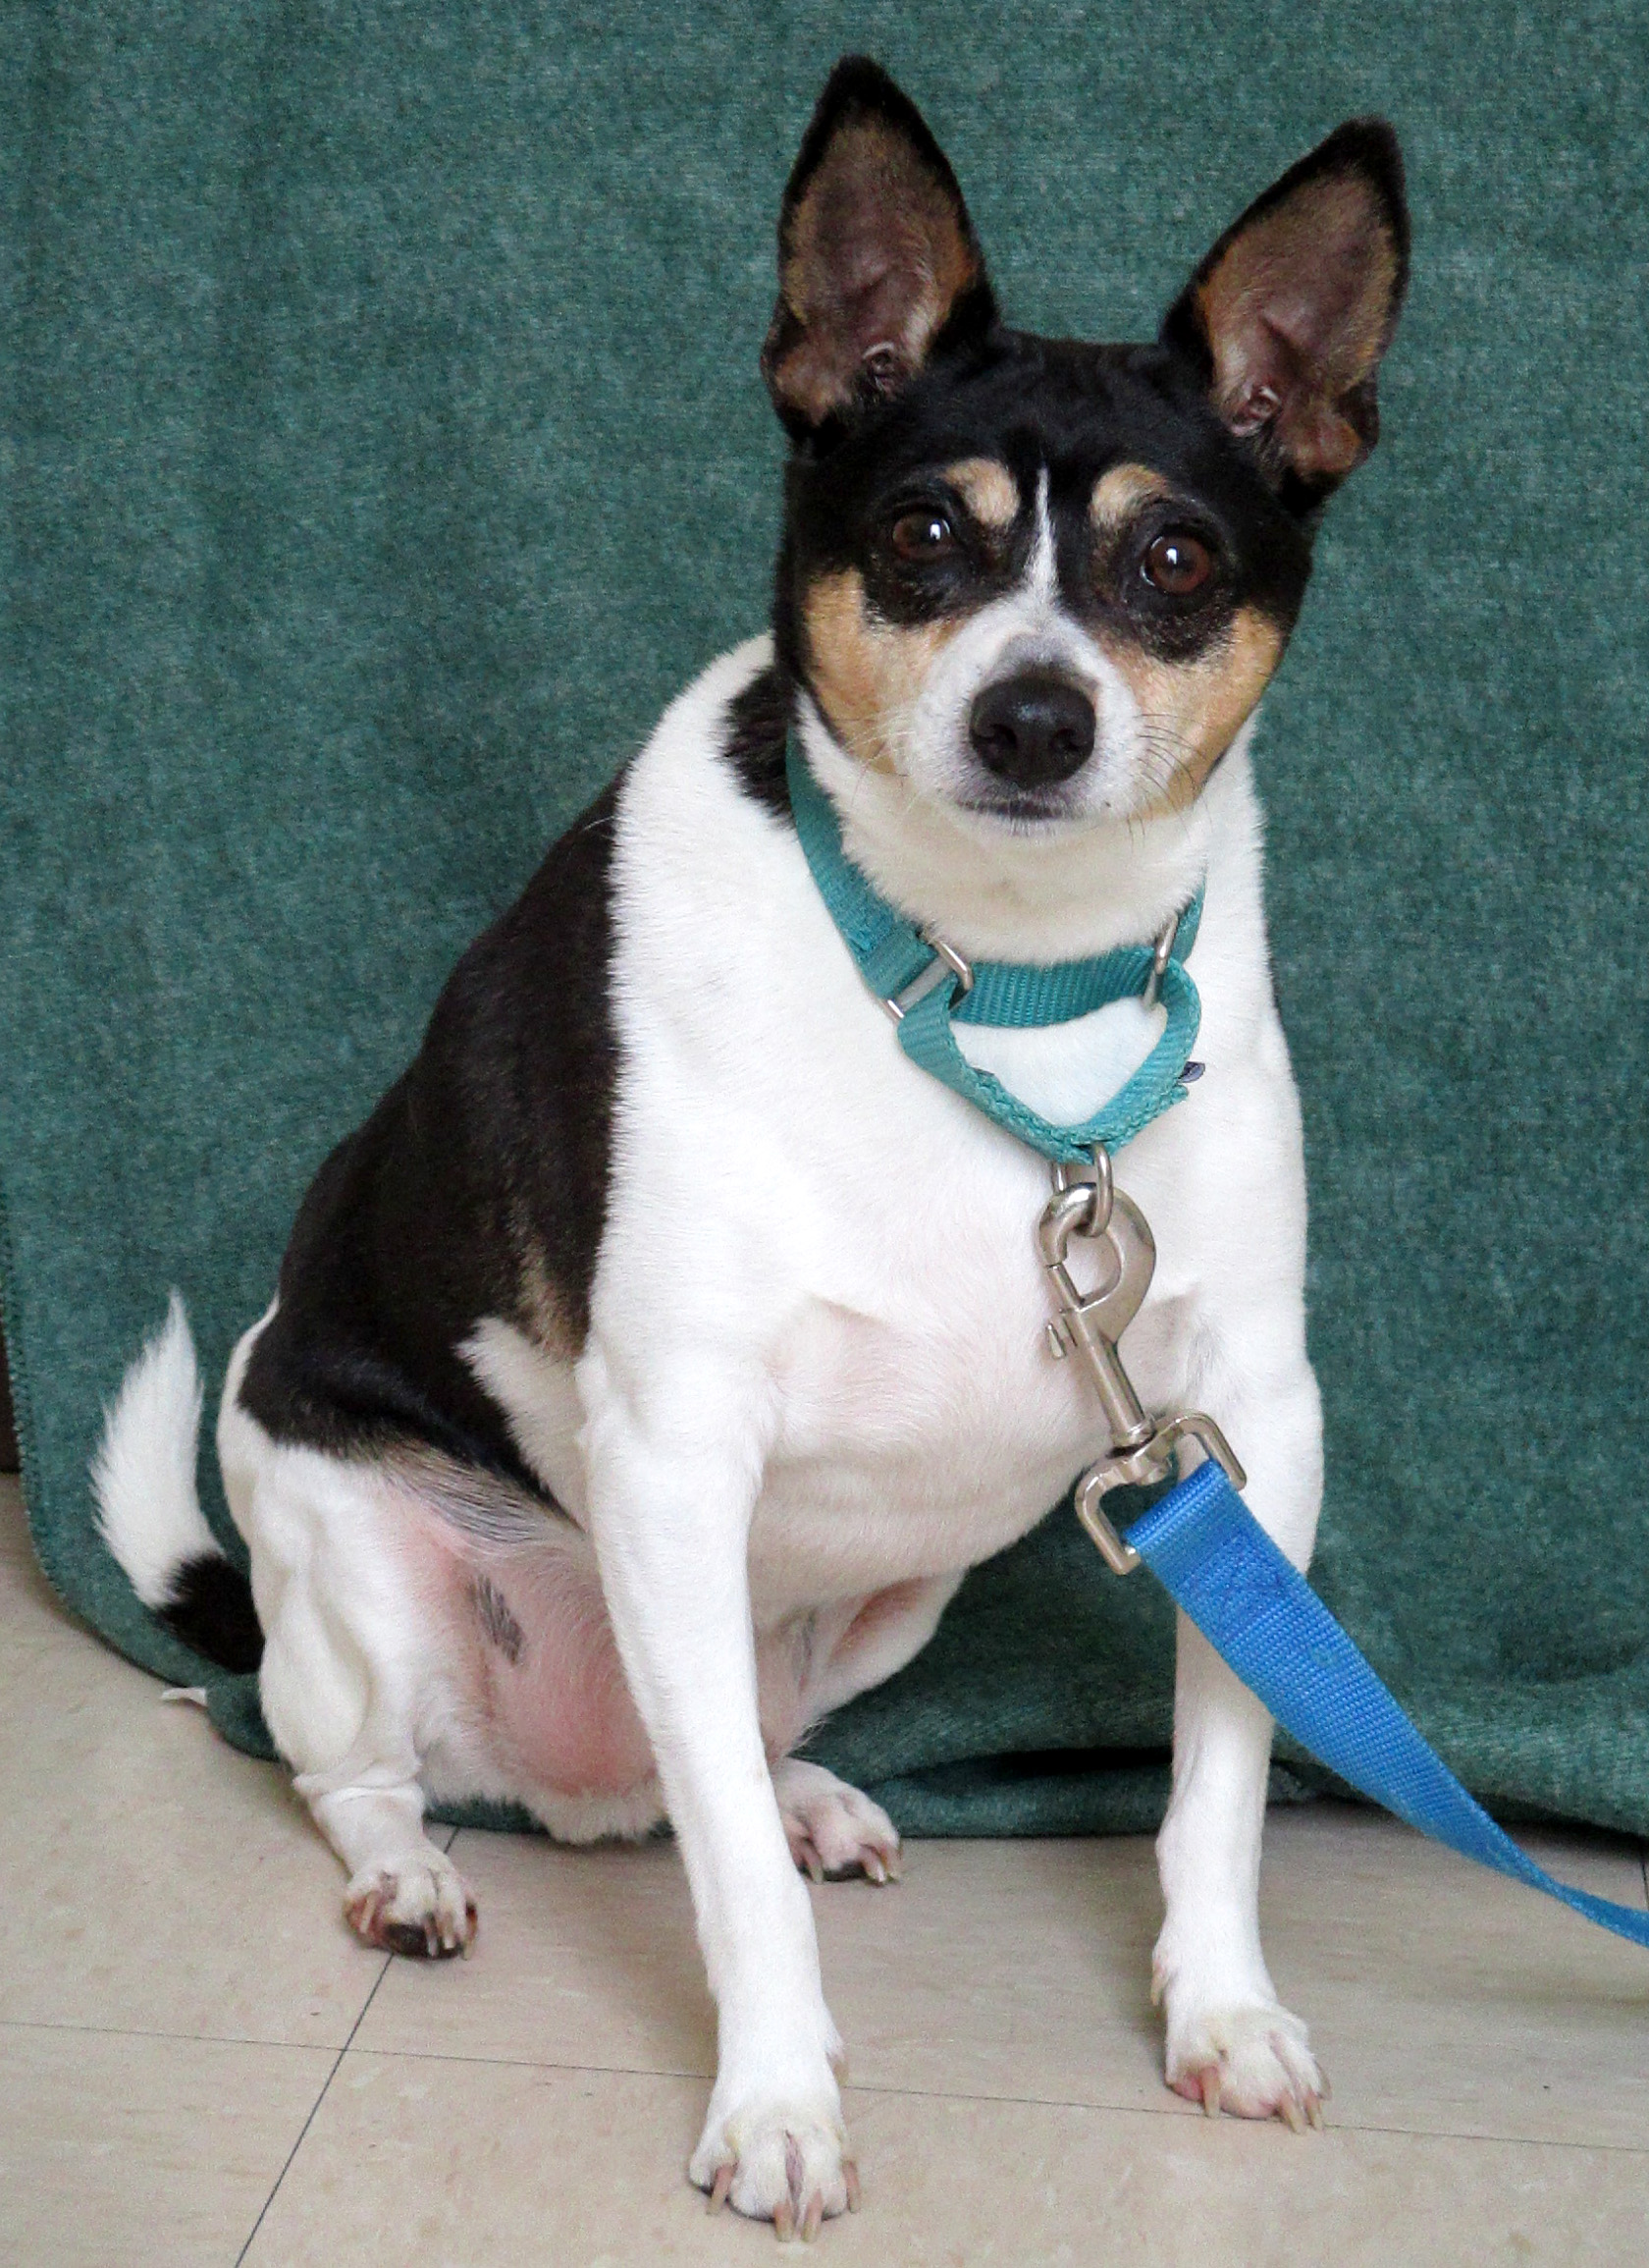 Prince is a 8-year-old Chihuahua/Rat Terrier. This boy loves his food! This means two things--he needs a diet and exercise plan, and when he is around his food bowl he needs to be left alone. For these reasons, he can't go to a home with small children. However, he does likes cats and some dogs.